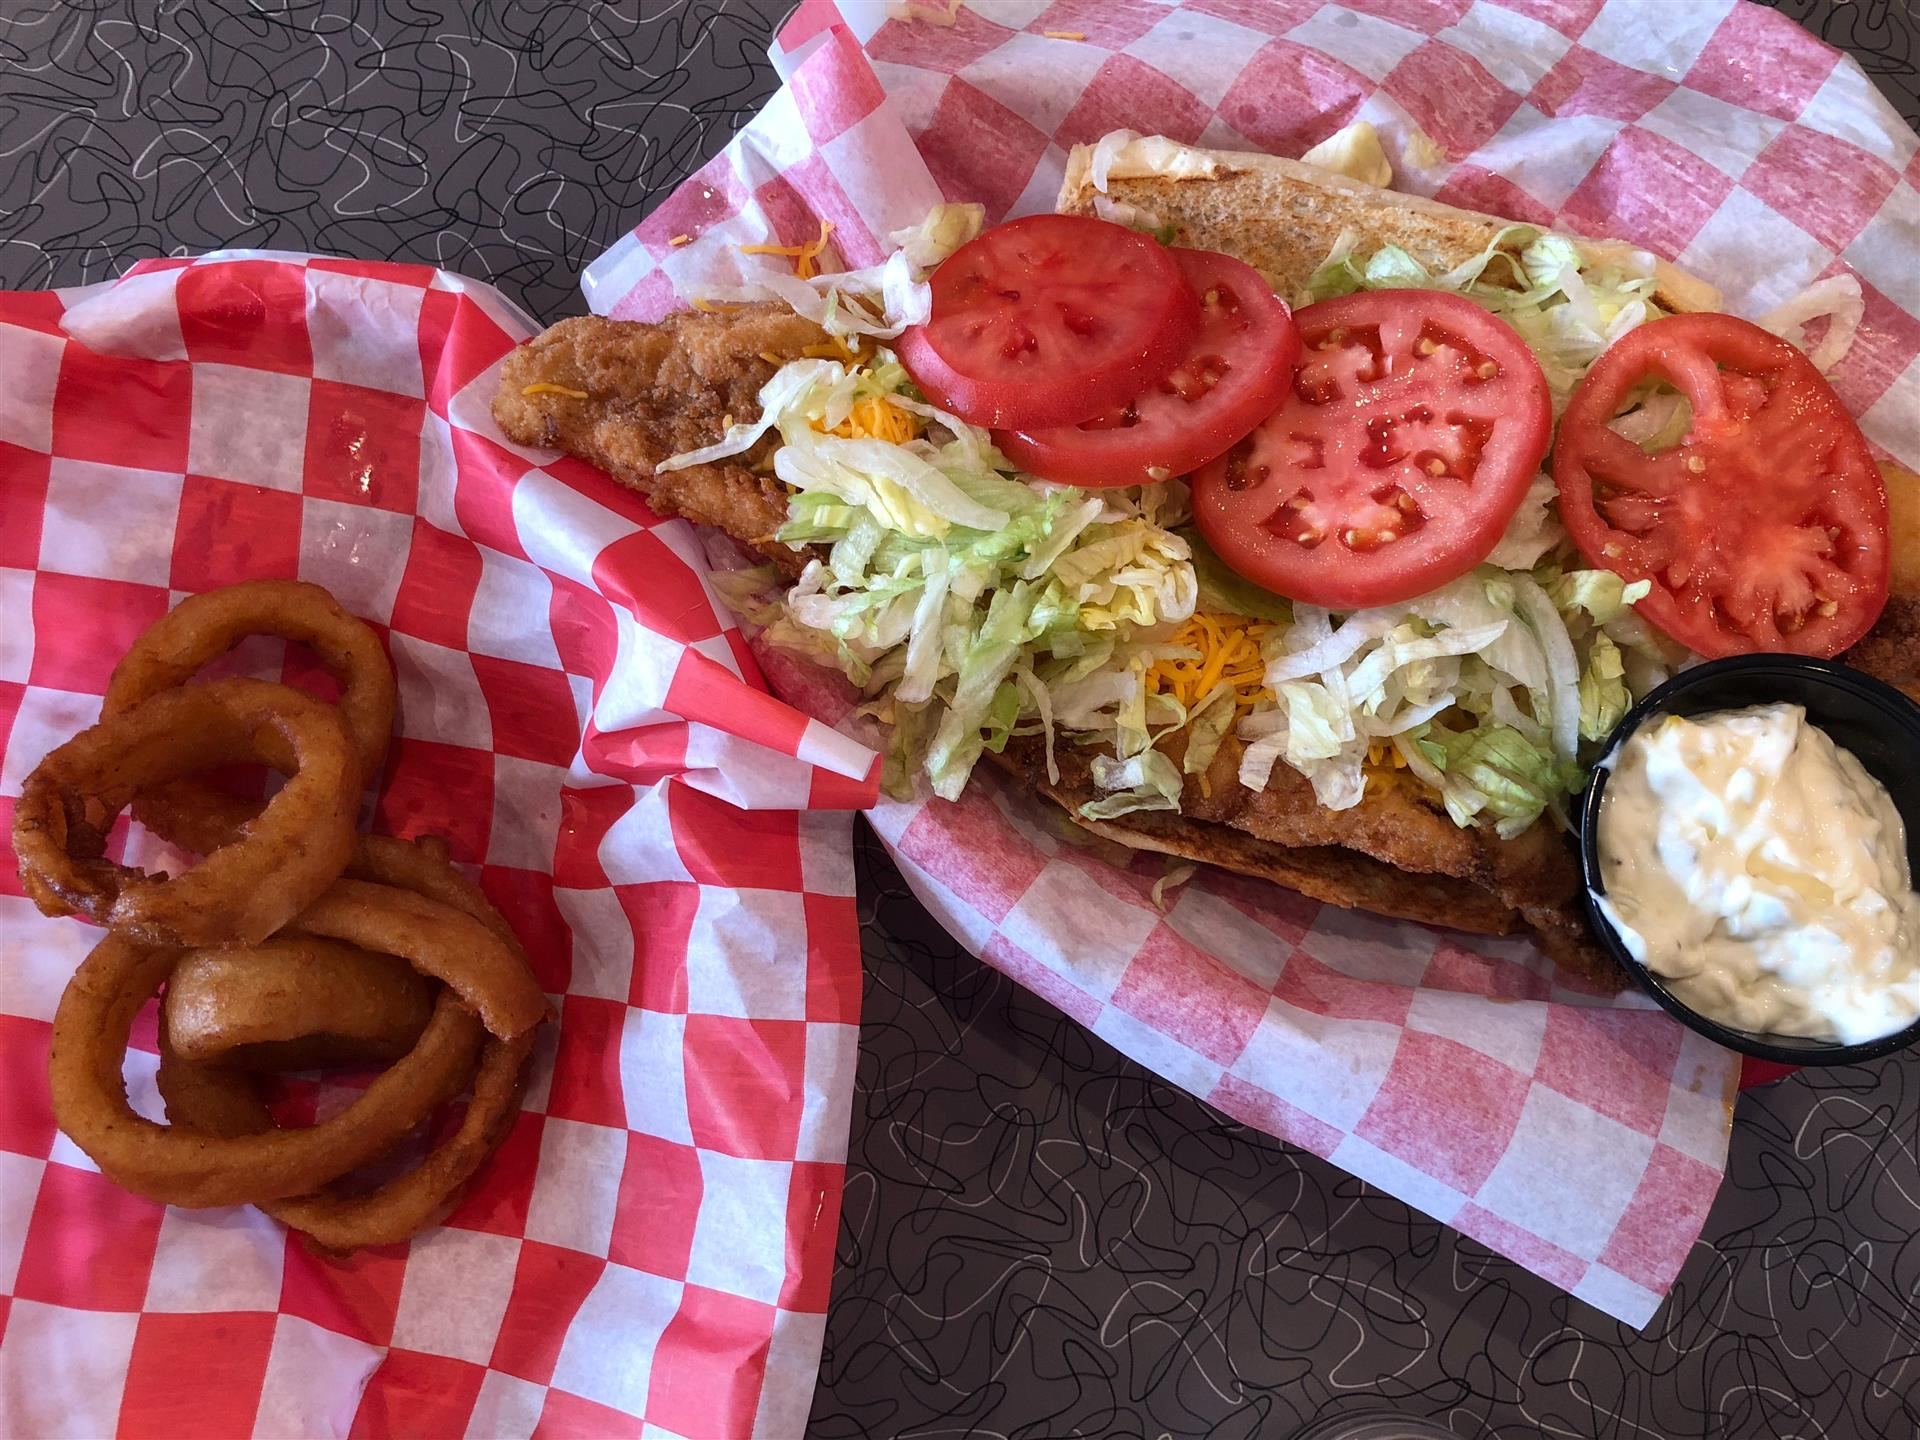 open faced chicken sandwich with cheese, lettuce, tomato and a side of dipping sauce with a side of onion rings